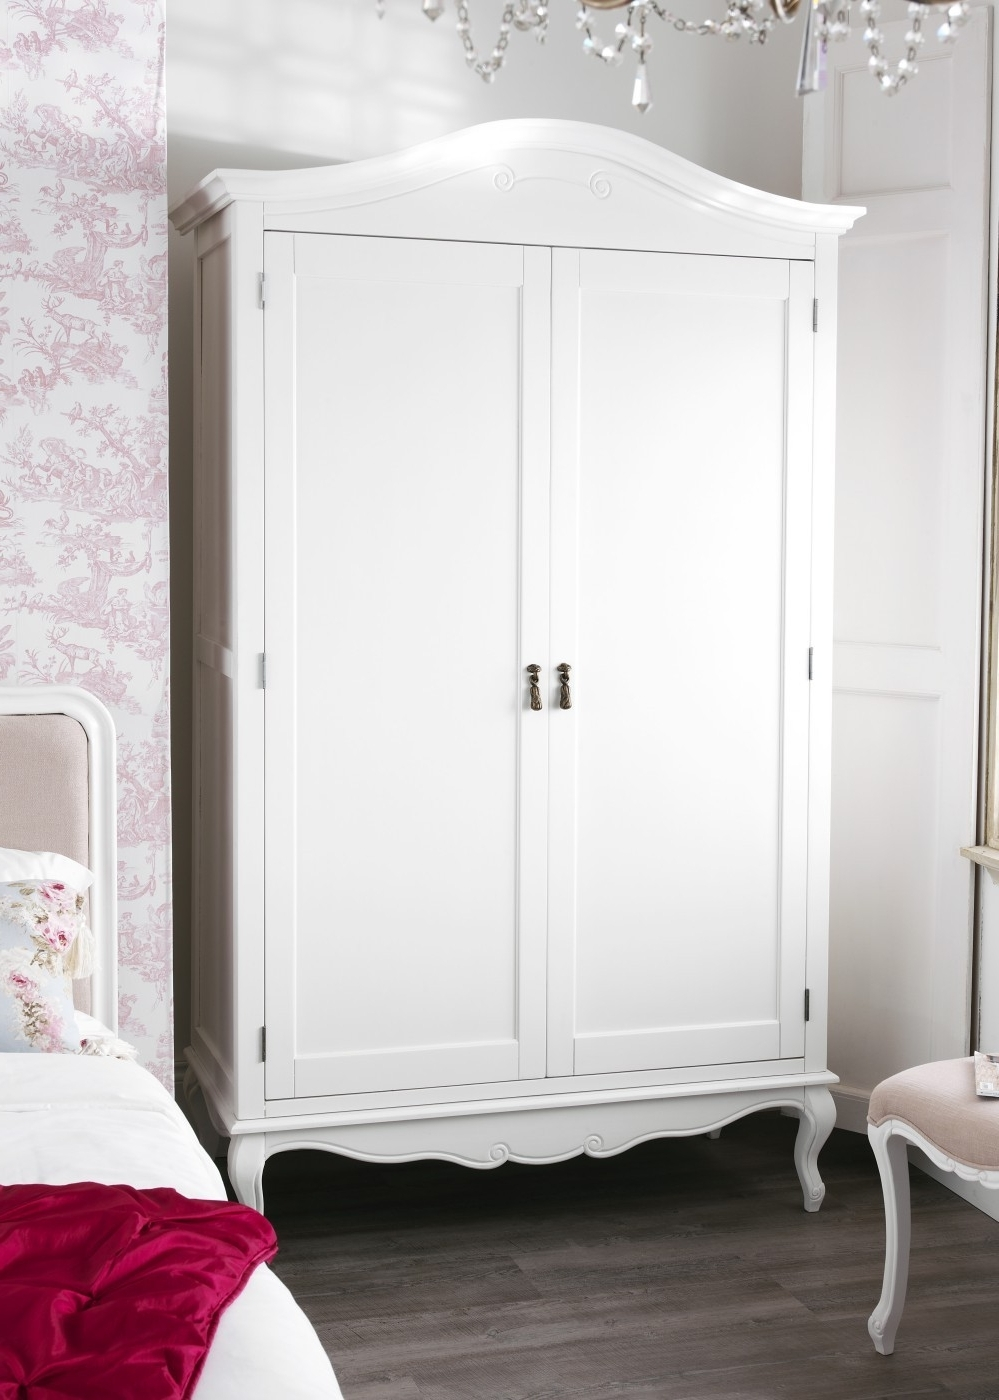 Shabby Chic White Upholstered King Size Bed In Latest Cheap Vintage Wardrobes (View 10 of 15)